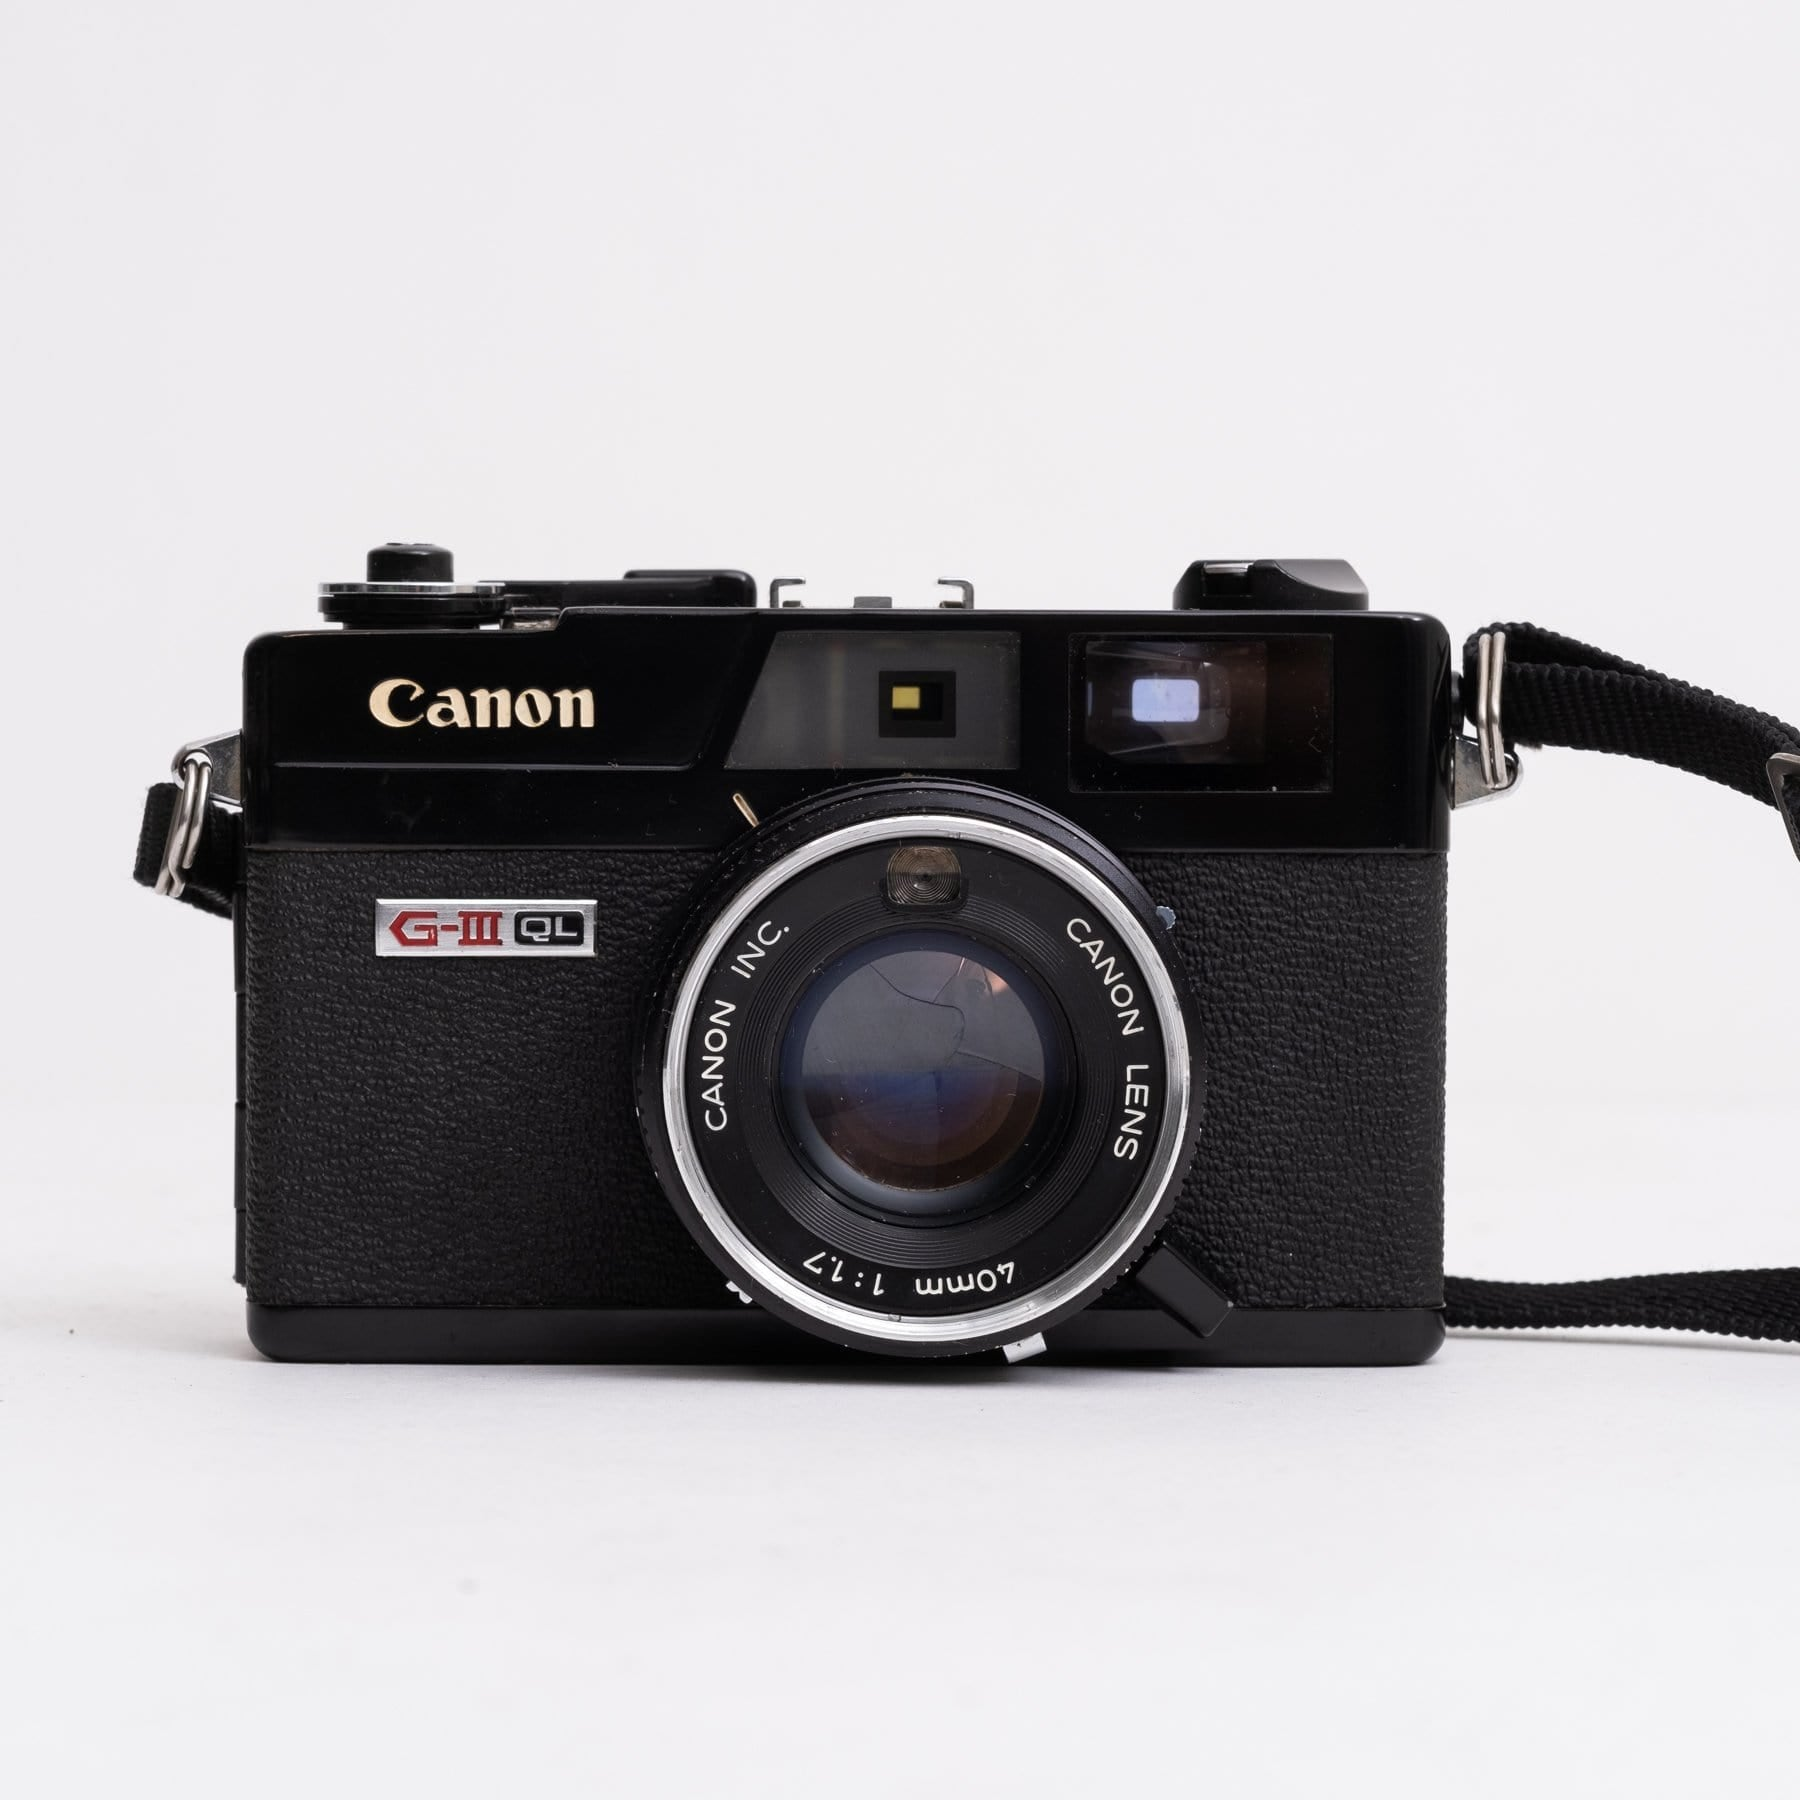 --Canon Canonet QL17 GIII BLACK 35mm Rangefinder Camera with 40mm f/1.7--